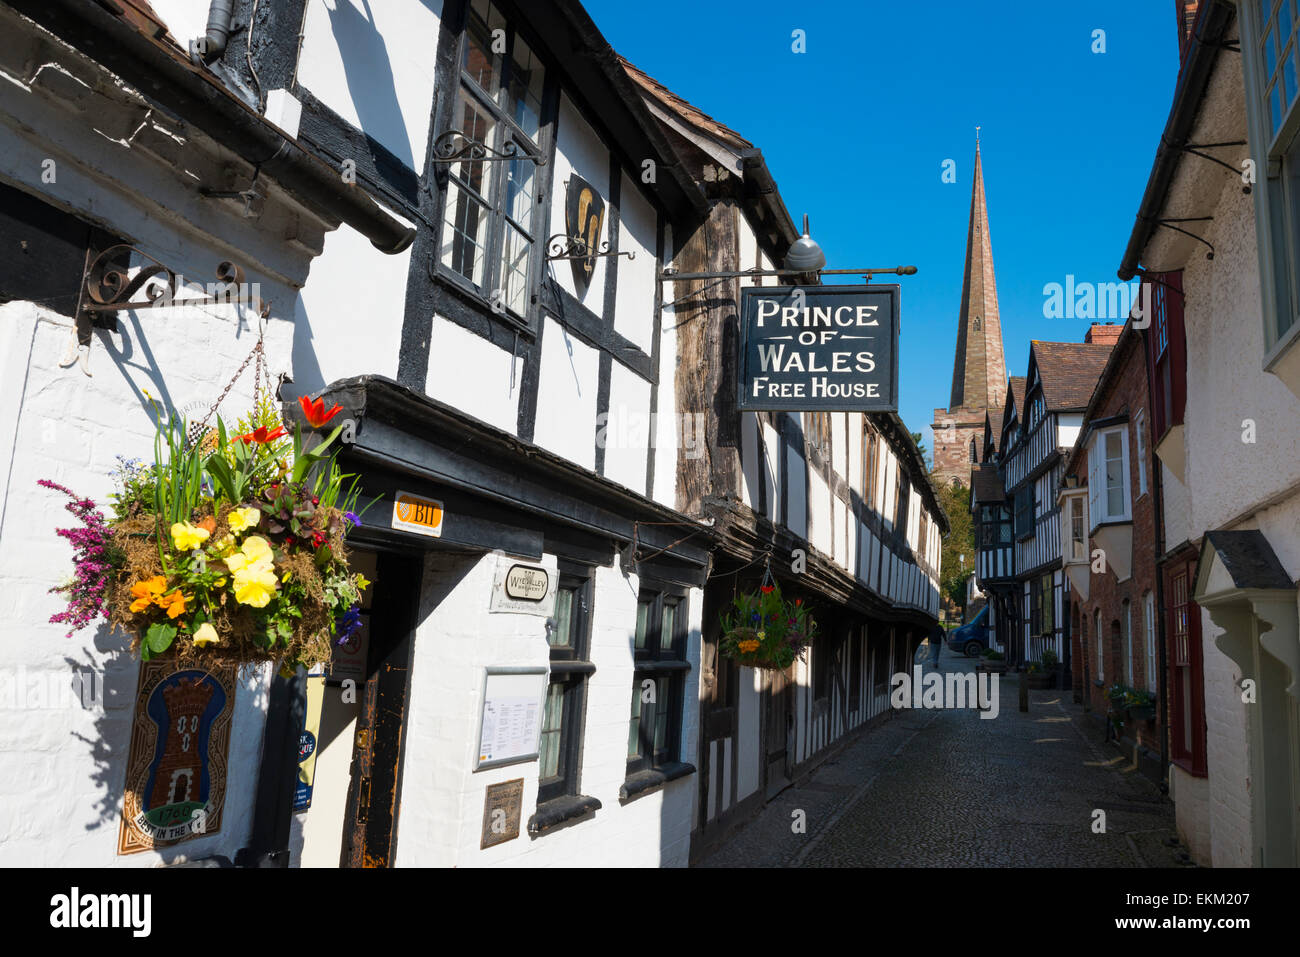 Prince of Wales pub in Church Lane, Ledbury, Herefordshire, England. - Stock Image